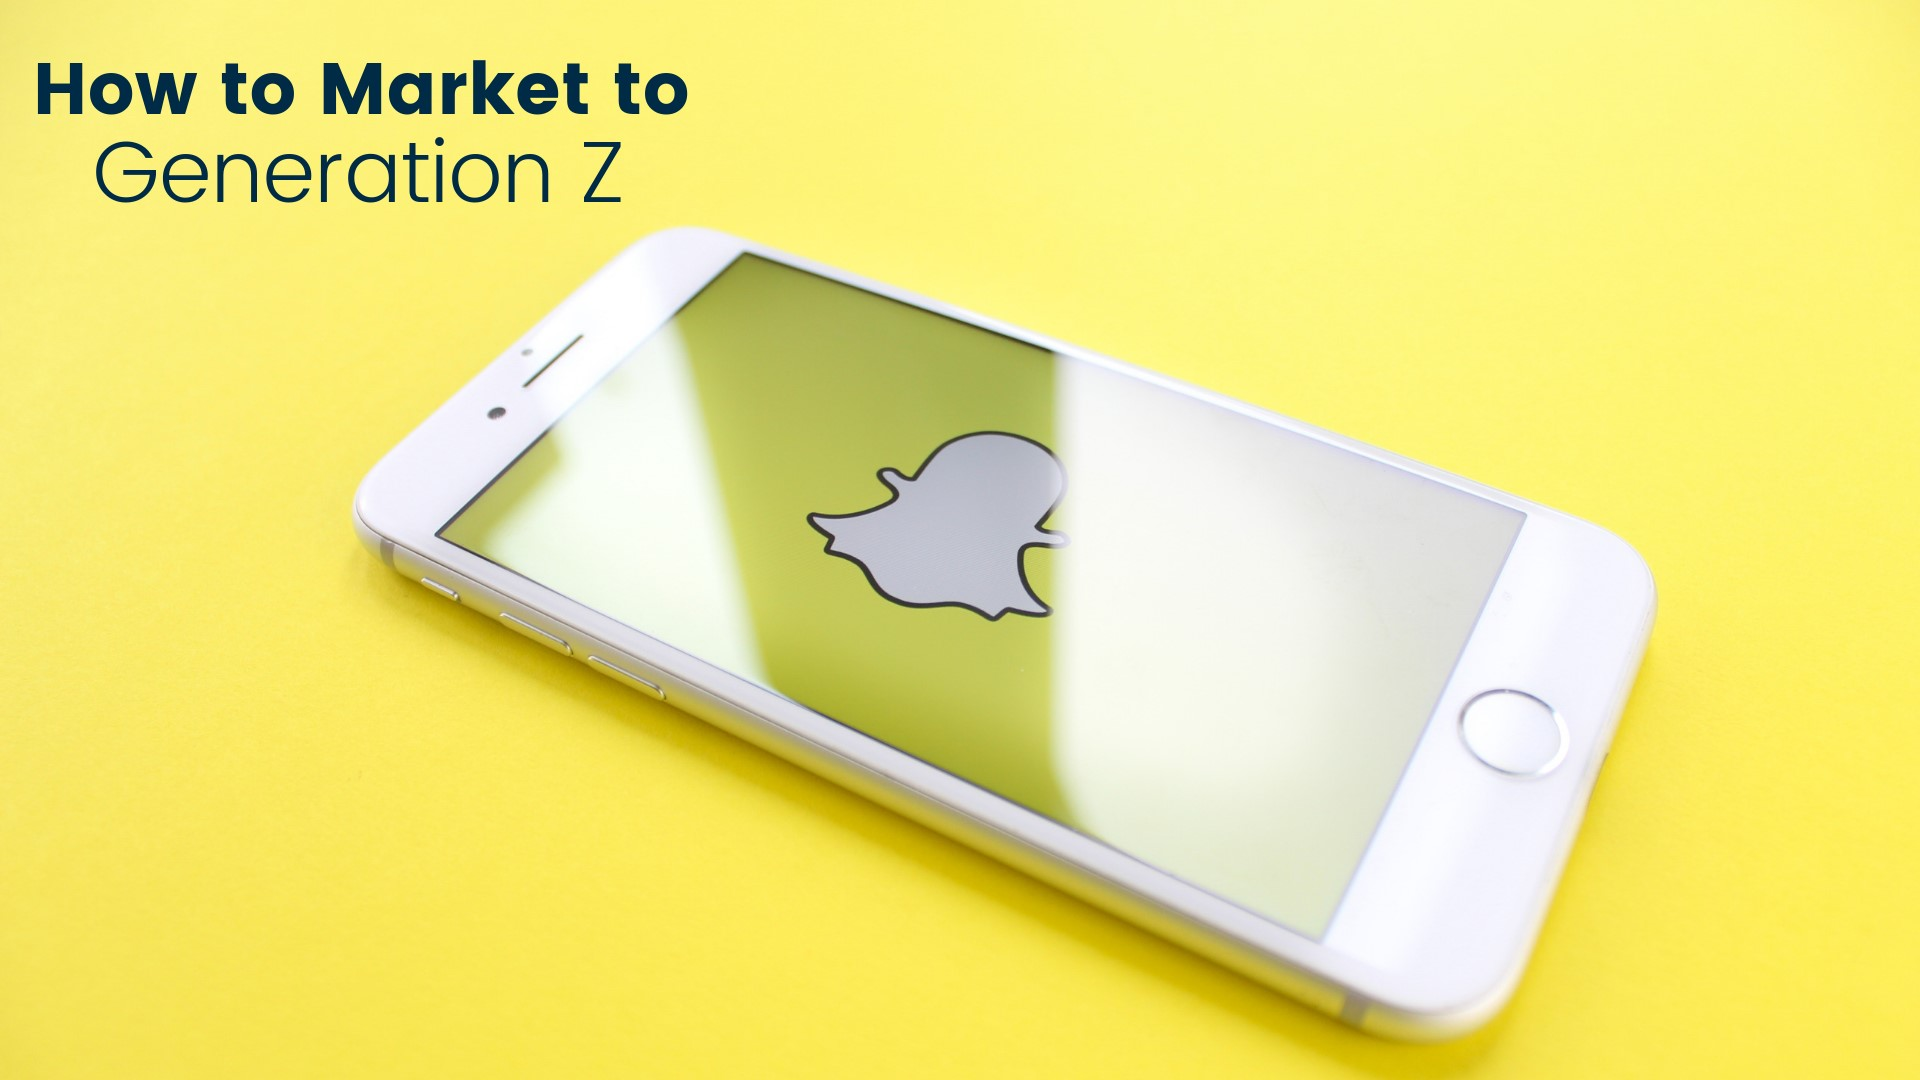 How to market to Generation Z with snapchat